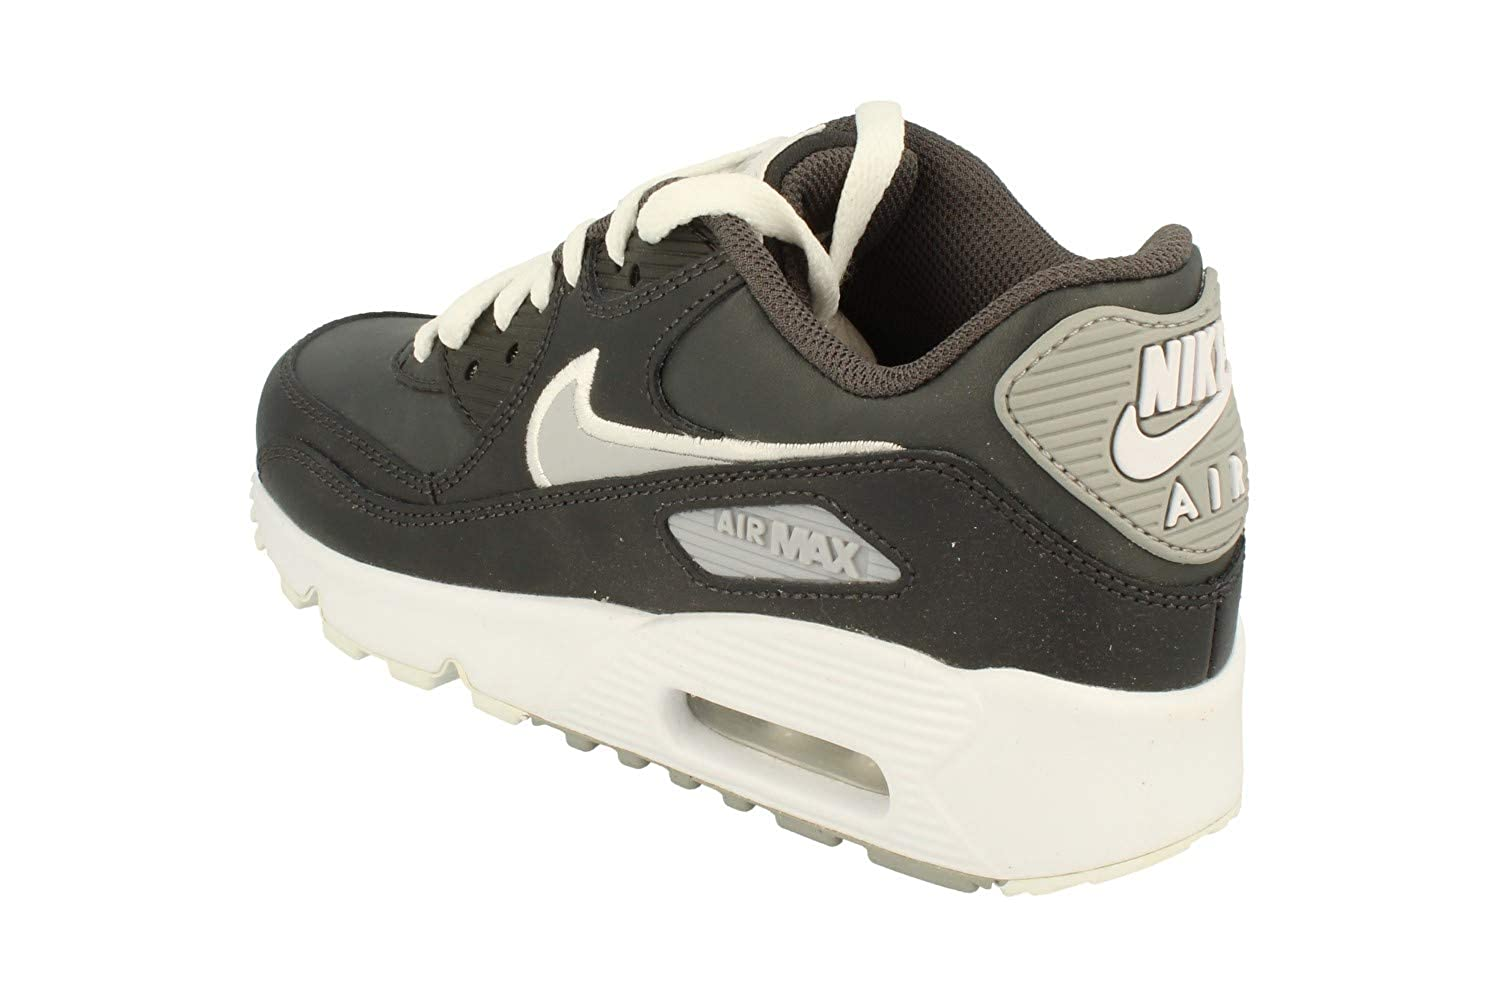 quality design 2e824 aac43 Amazon.com   Nike Youth Air Max 90 Leather Trainers   Fashion Sneakers